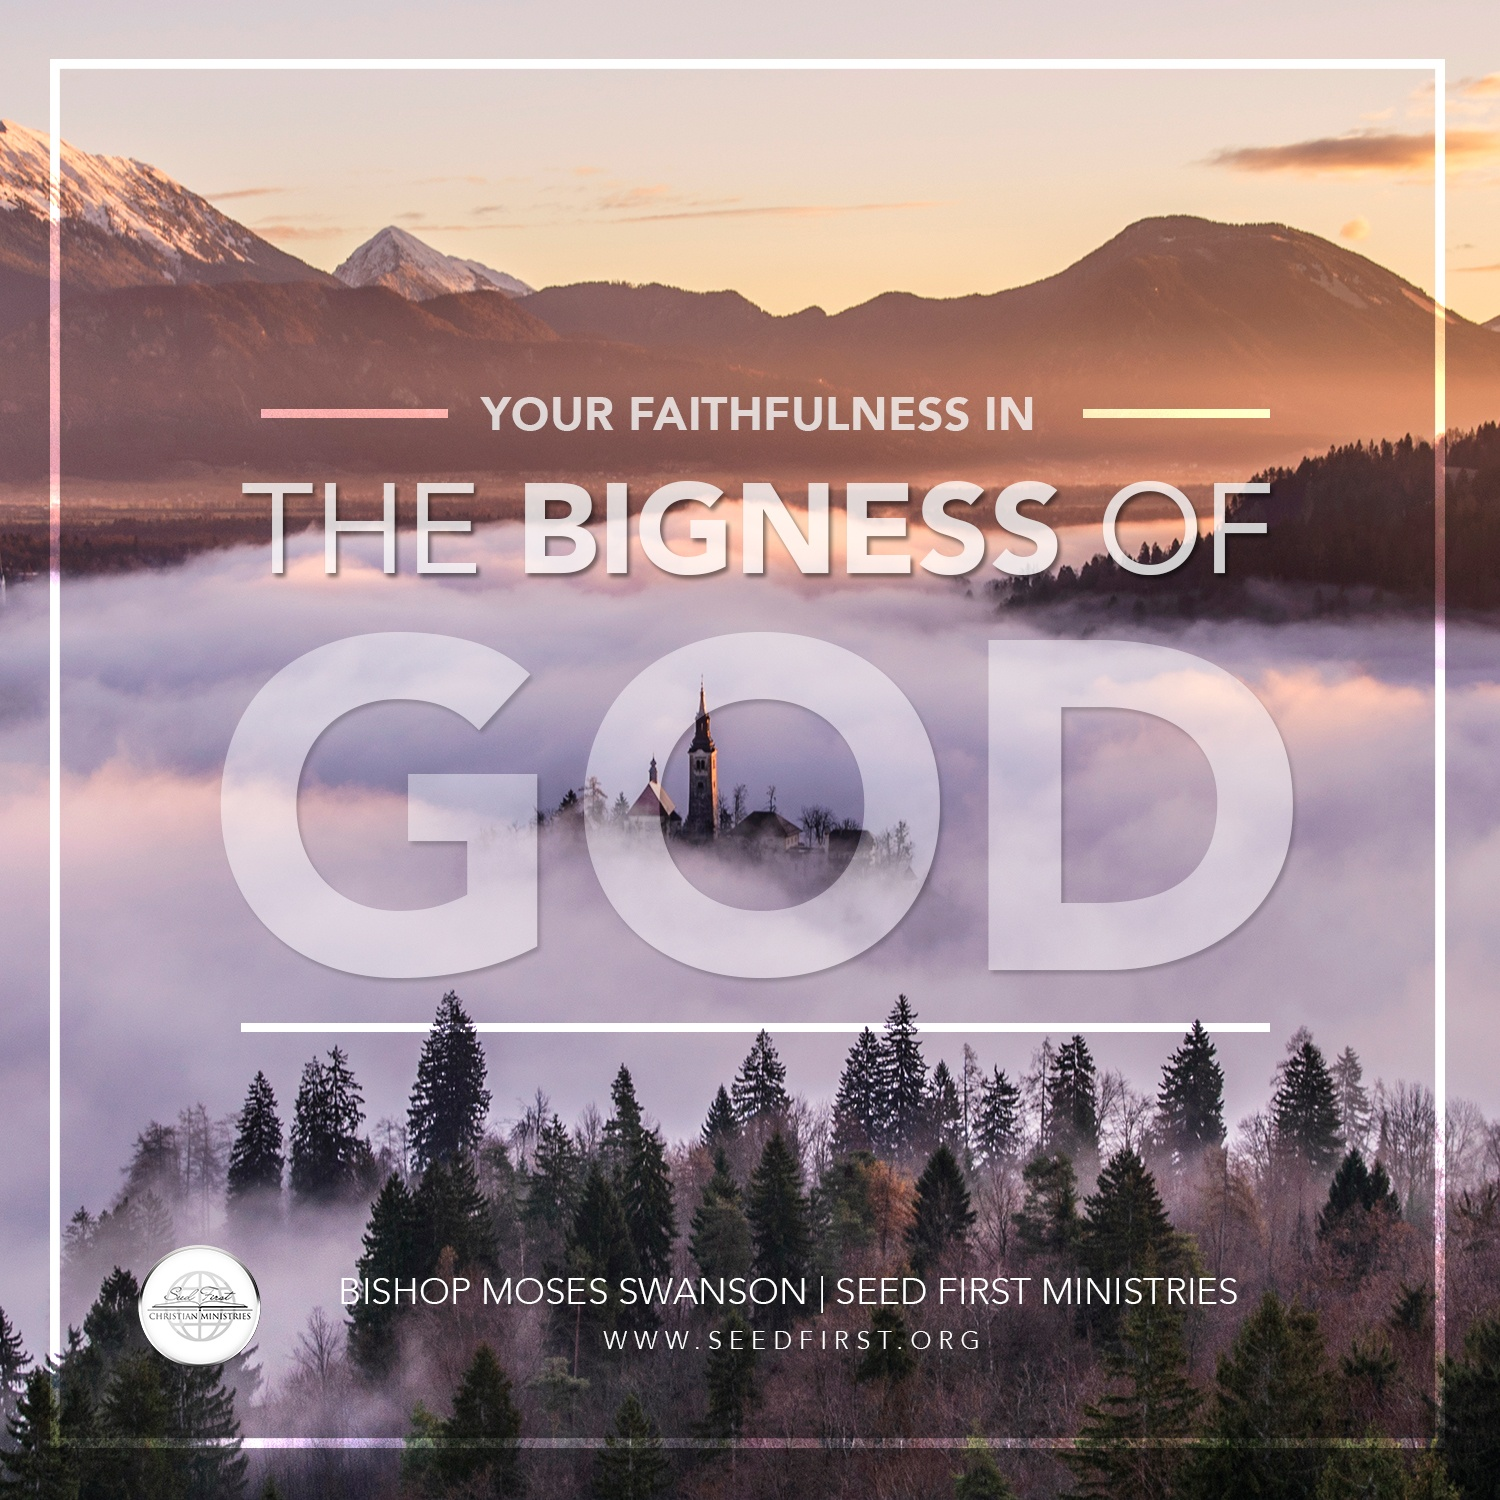 Your Faithfulness in the Bigness of God